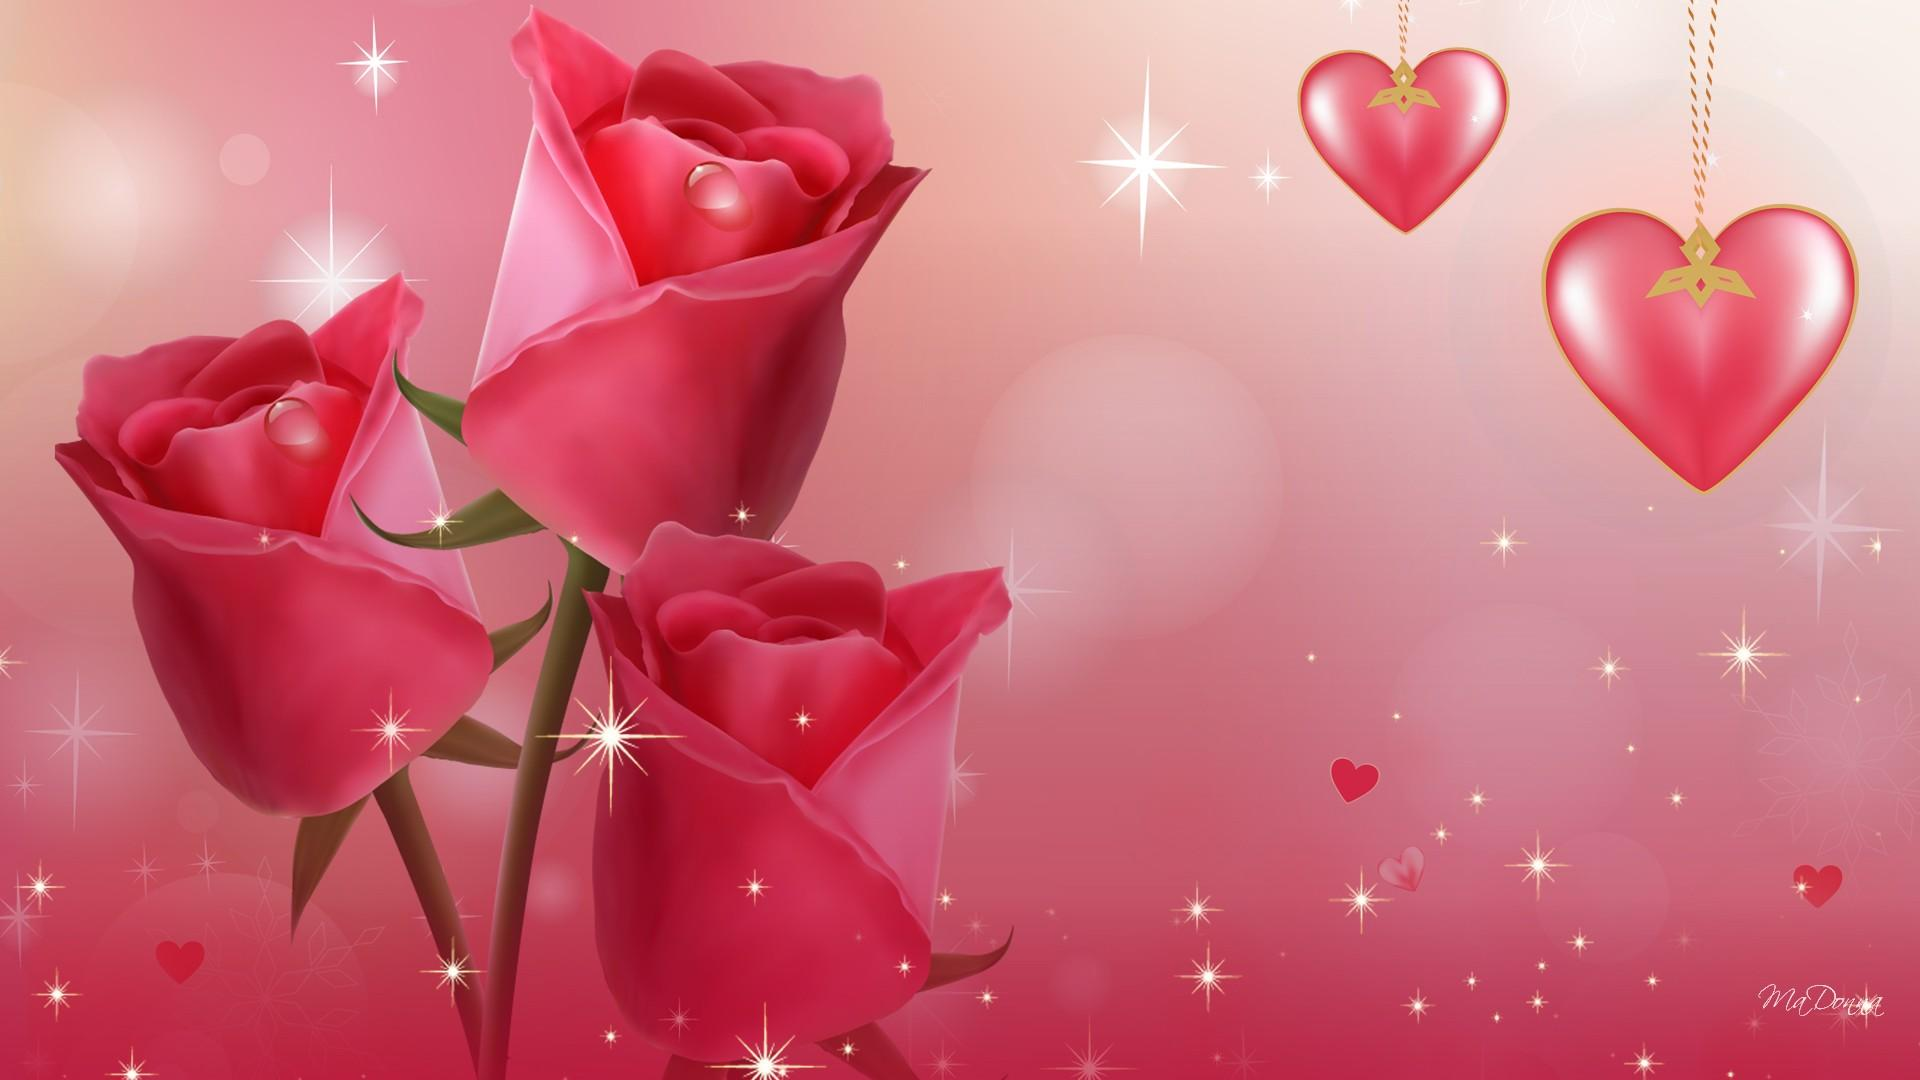 Love Theme Wallpaper In Hd : Beautiful Love Wallpaper HD - WallpaperSafari